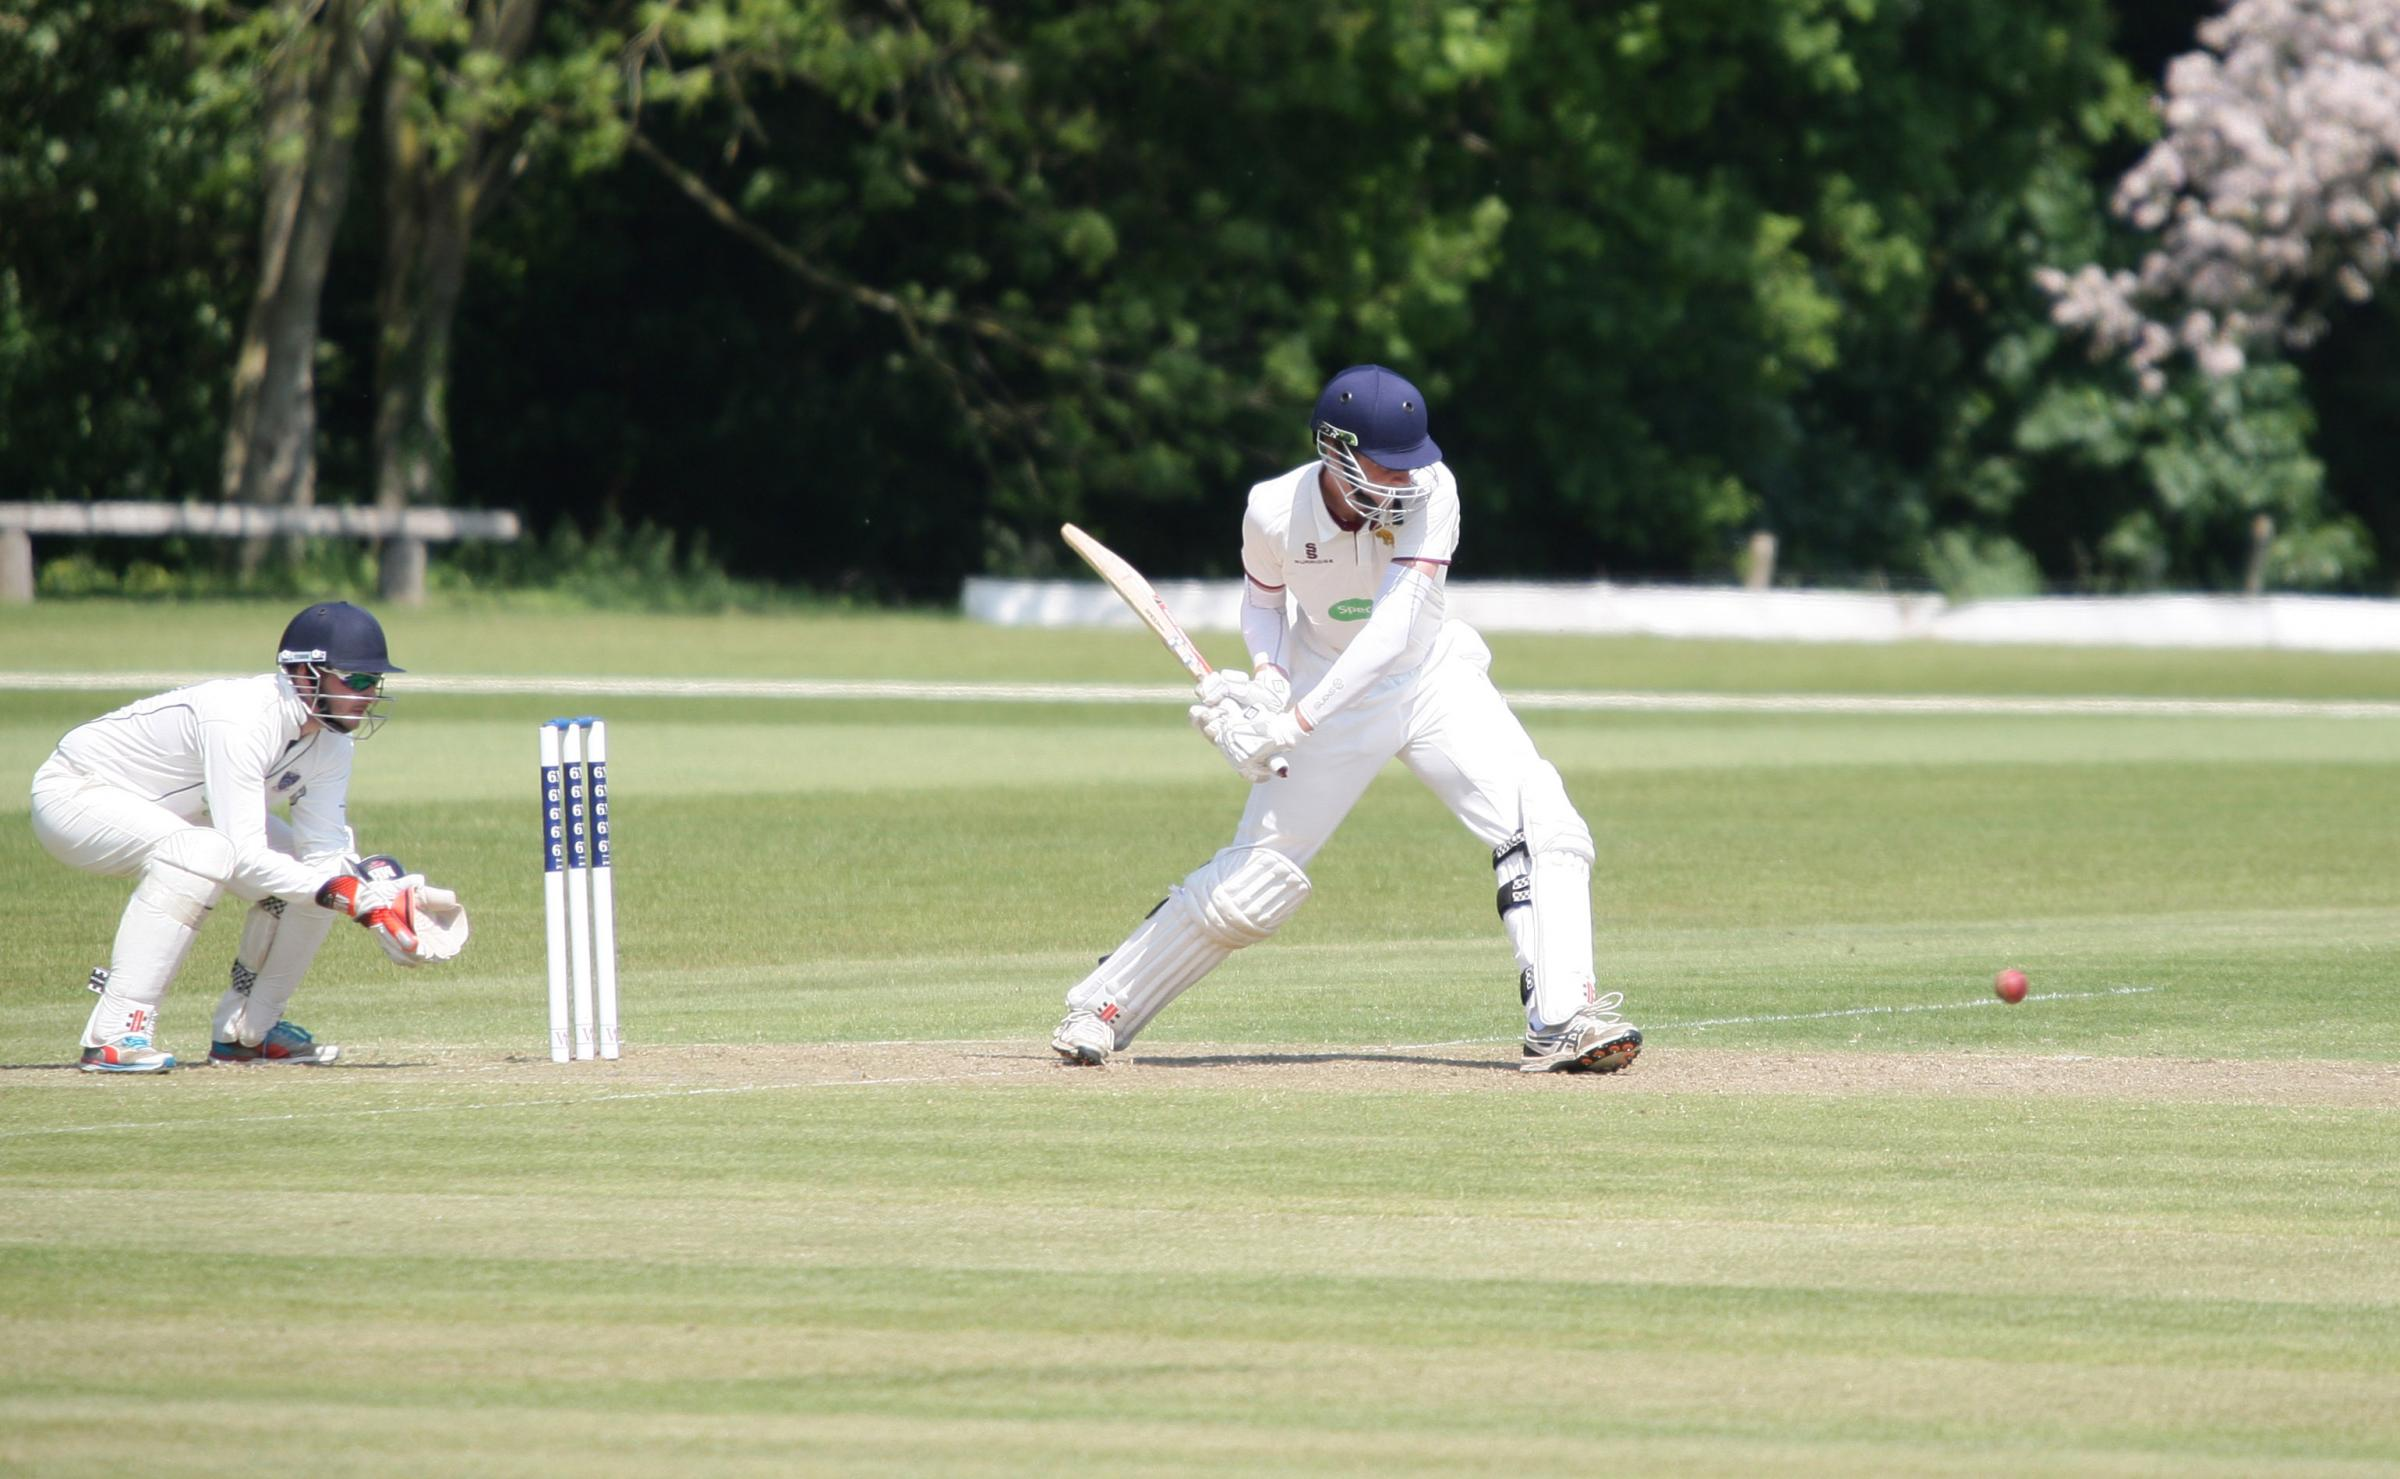 HALF-CENTURY: North Perrott's very own Kiwi, Jack Henderson, on his way to his first 50 since arriving at the club. Pic: Adrian Hopper